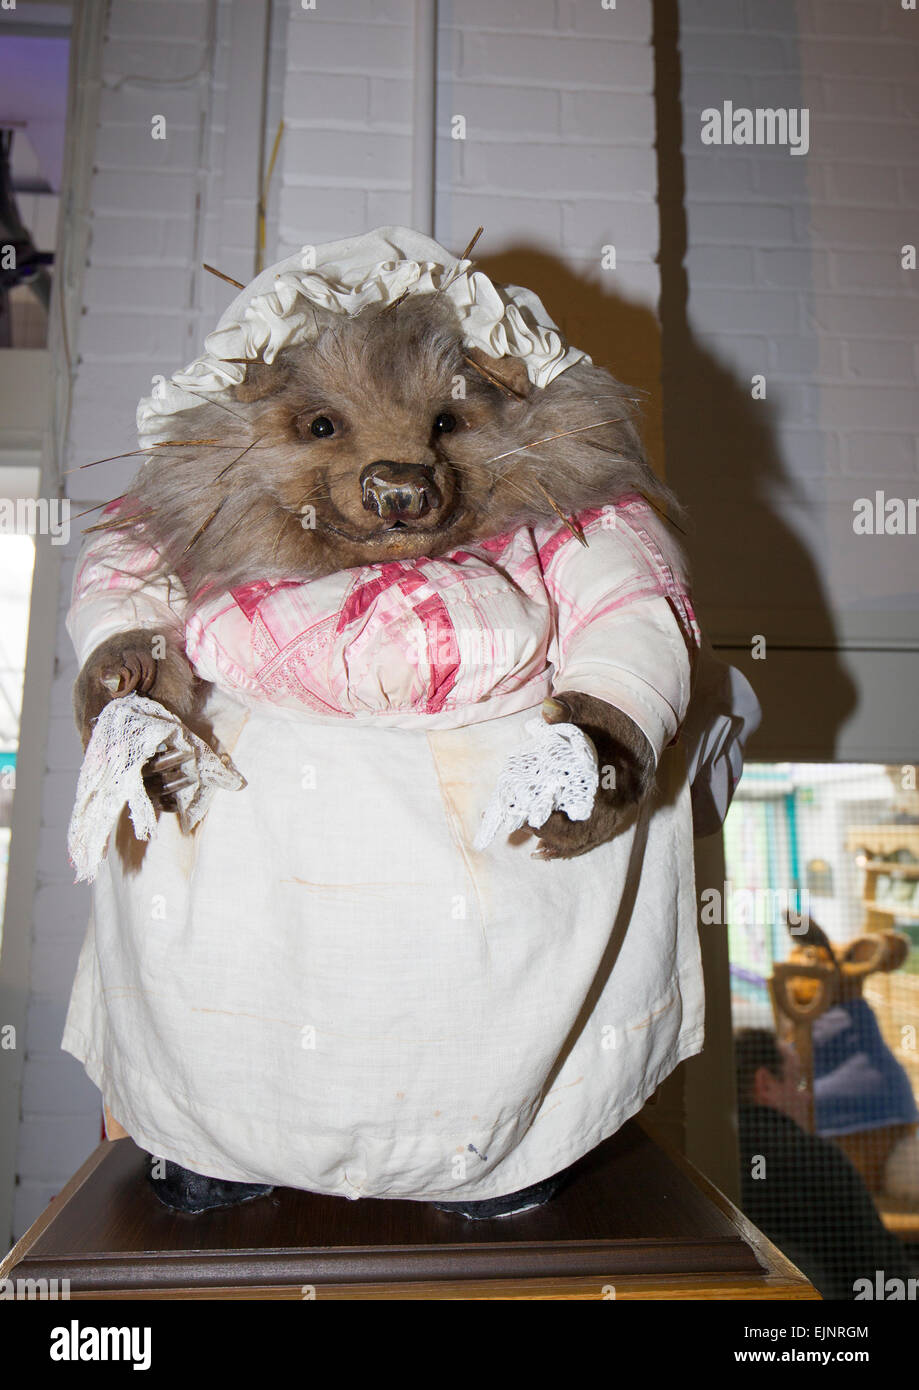 The World of Beatrix Potter attraction Mrs Tiggy-Winkle hedgehog - Stock Image